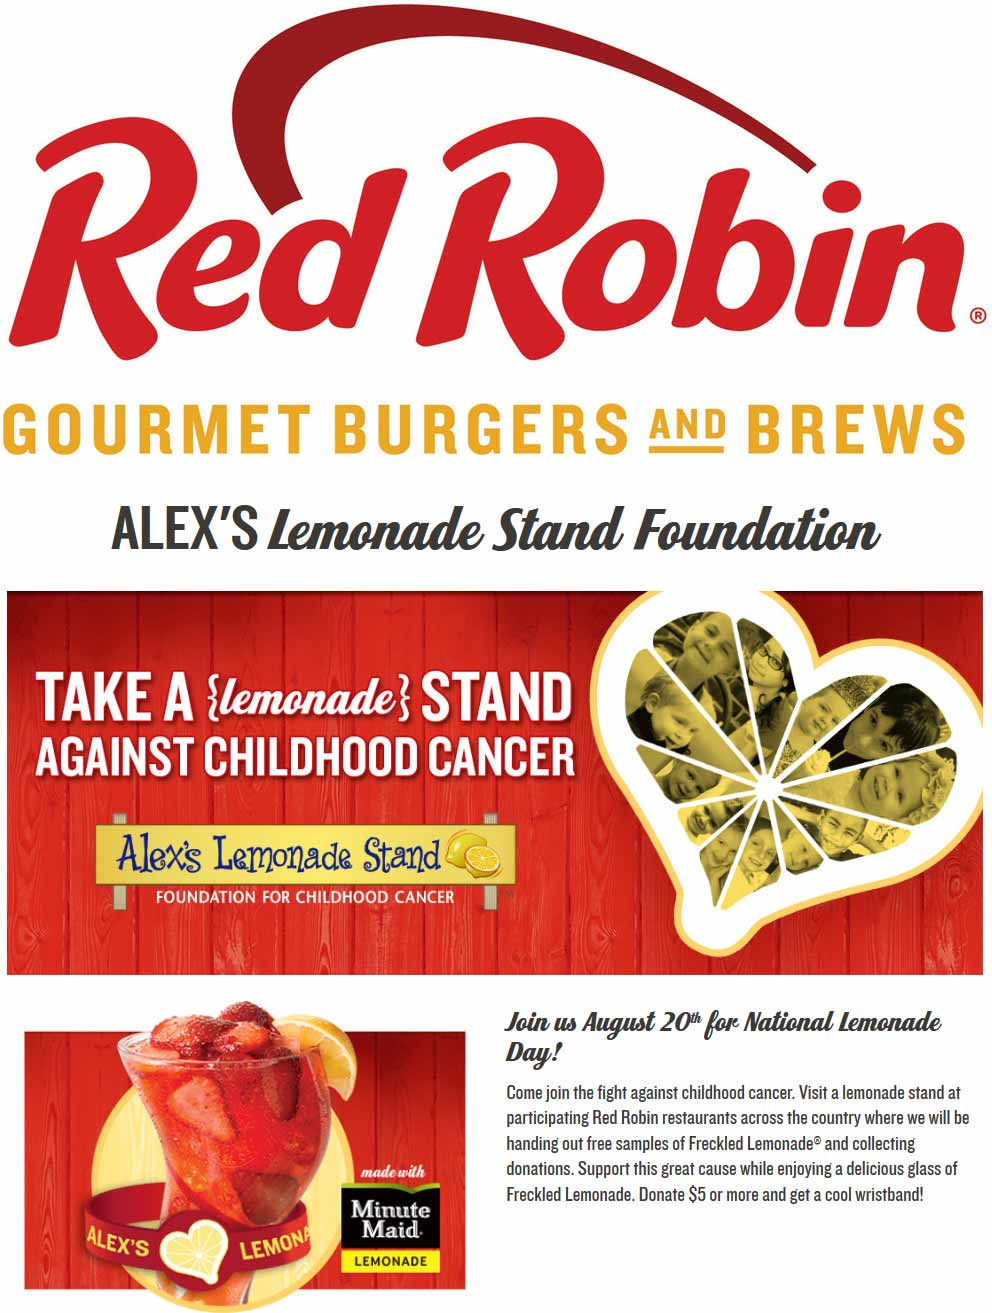 RedRobin.com Promo Coupon Free lemonade for charity Saturday at Red Robin restaurants